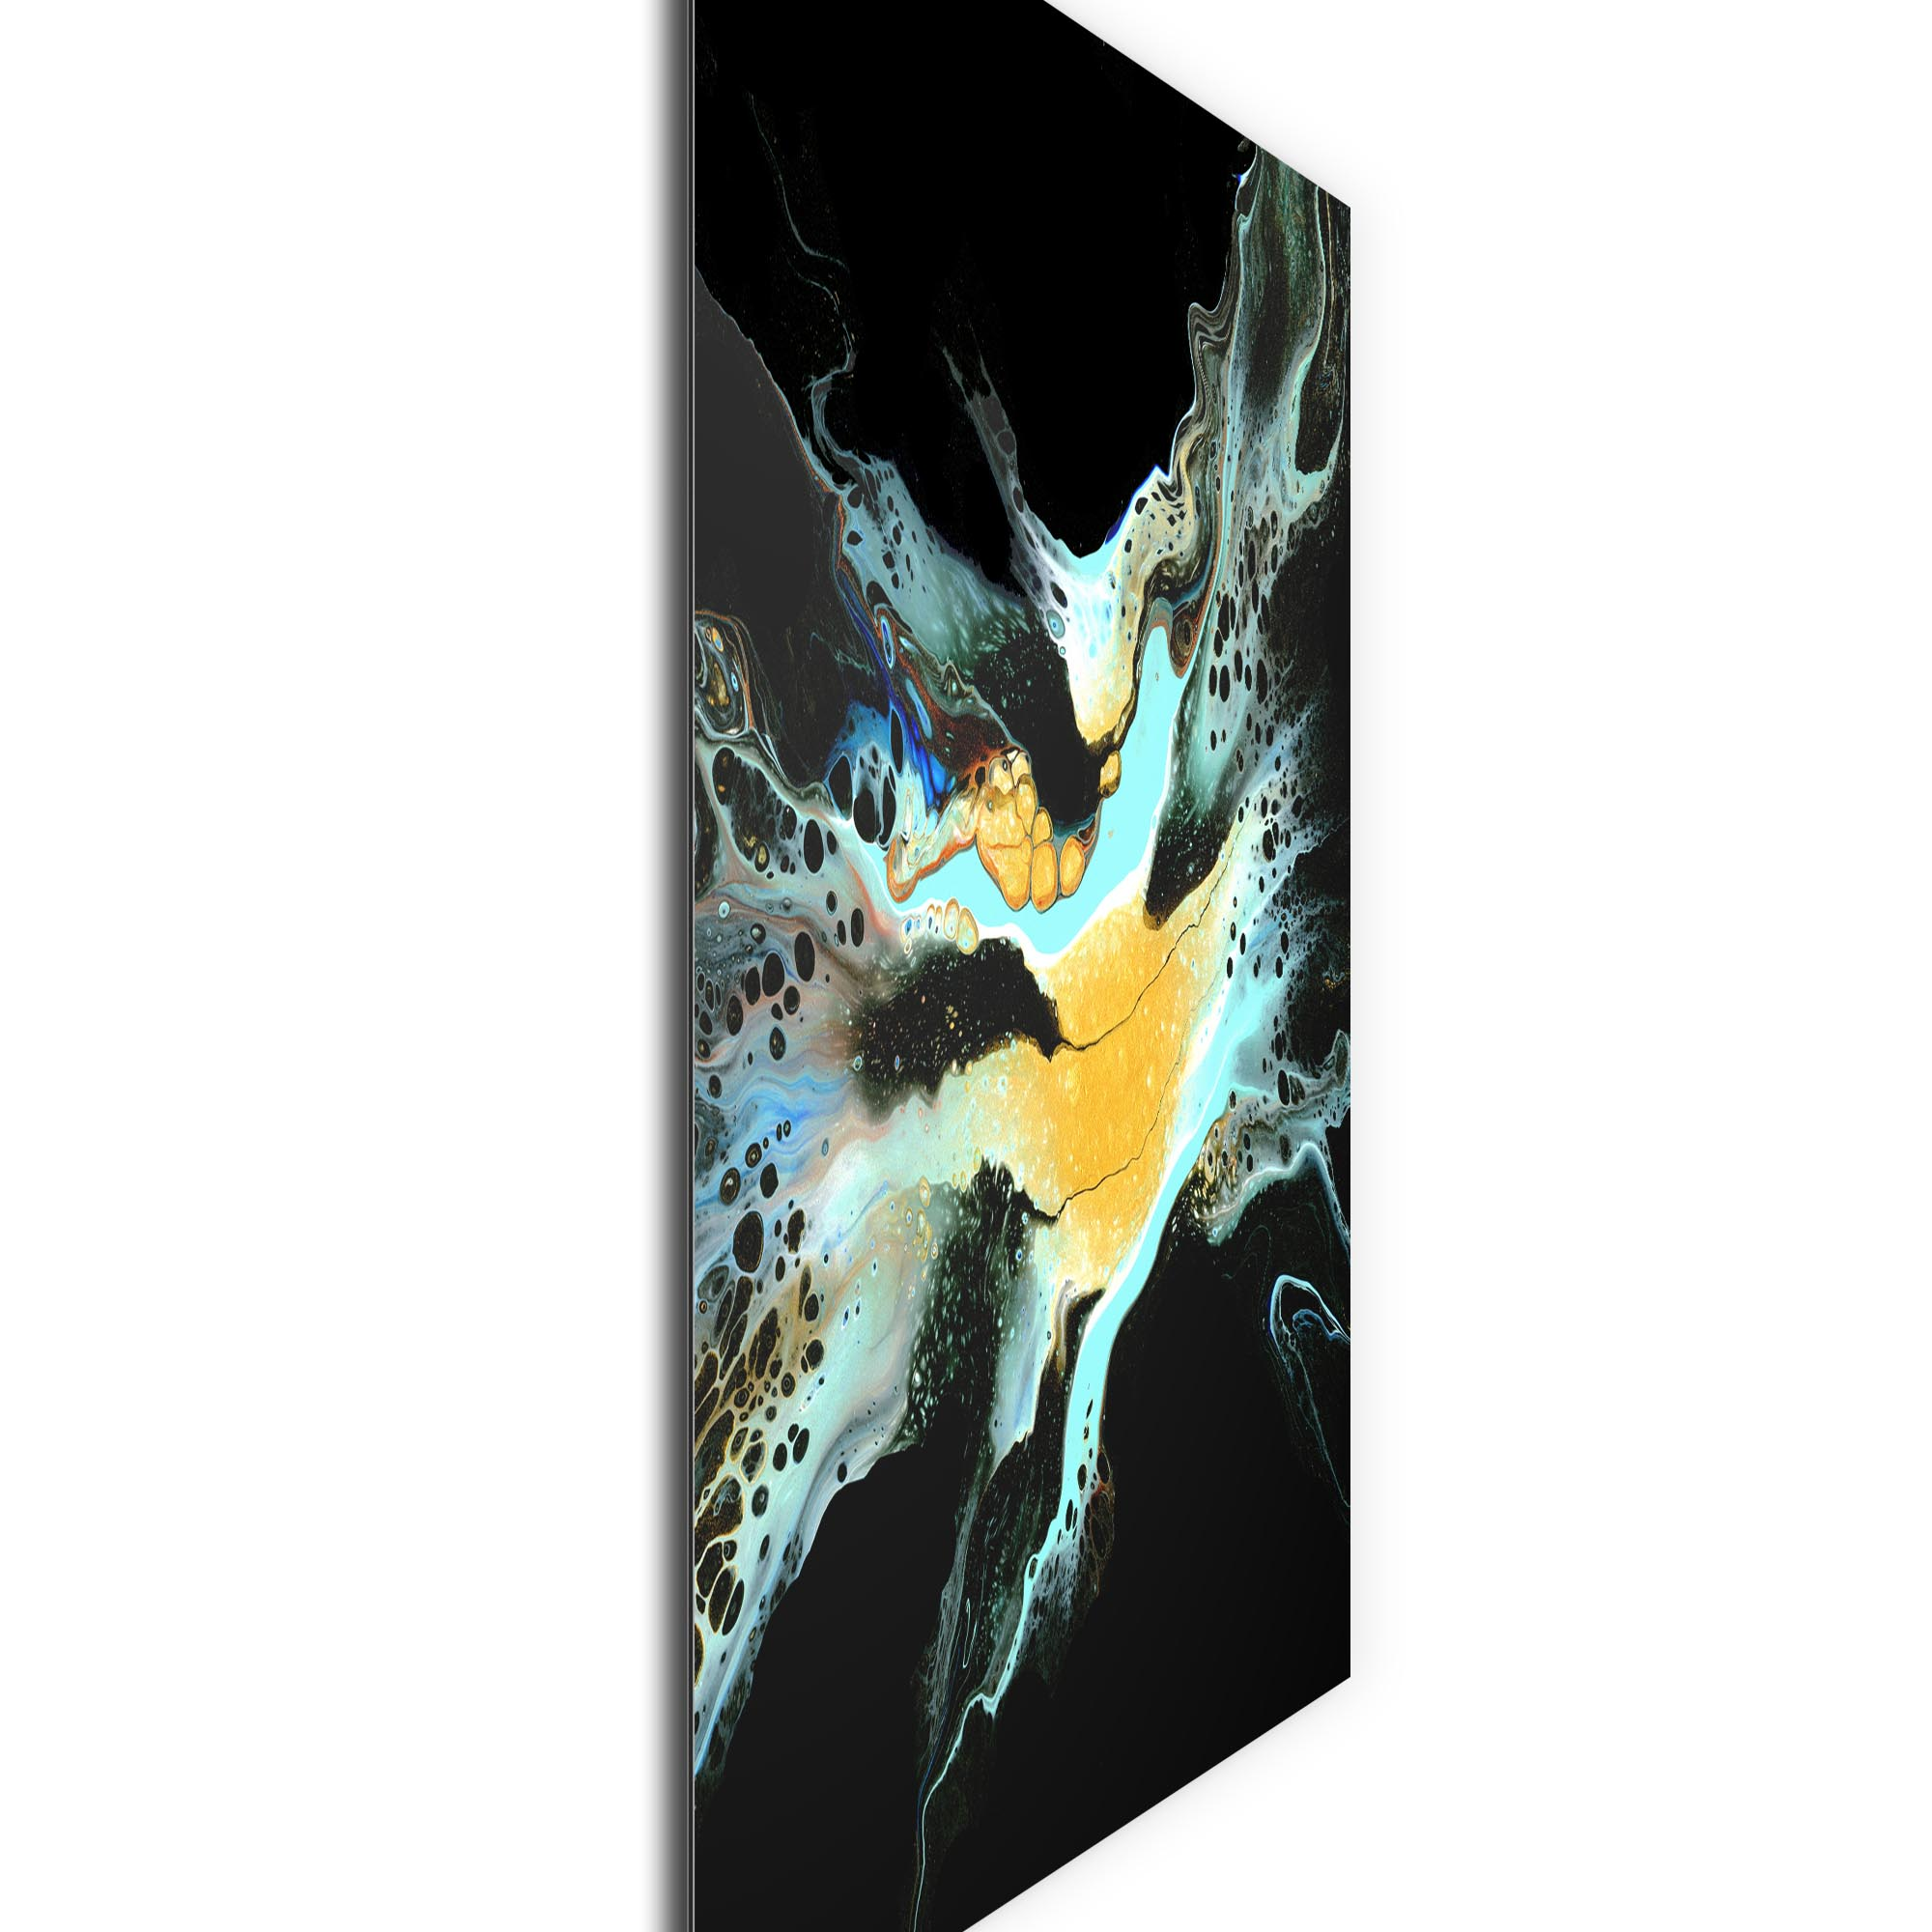 Glimpse by Elana Reiter - Abstract Wall Art, Modern Home Decor (36in x 36in) - Image 2